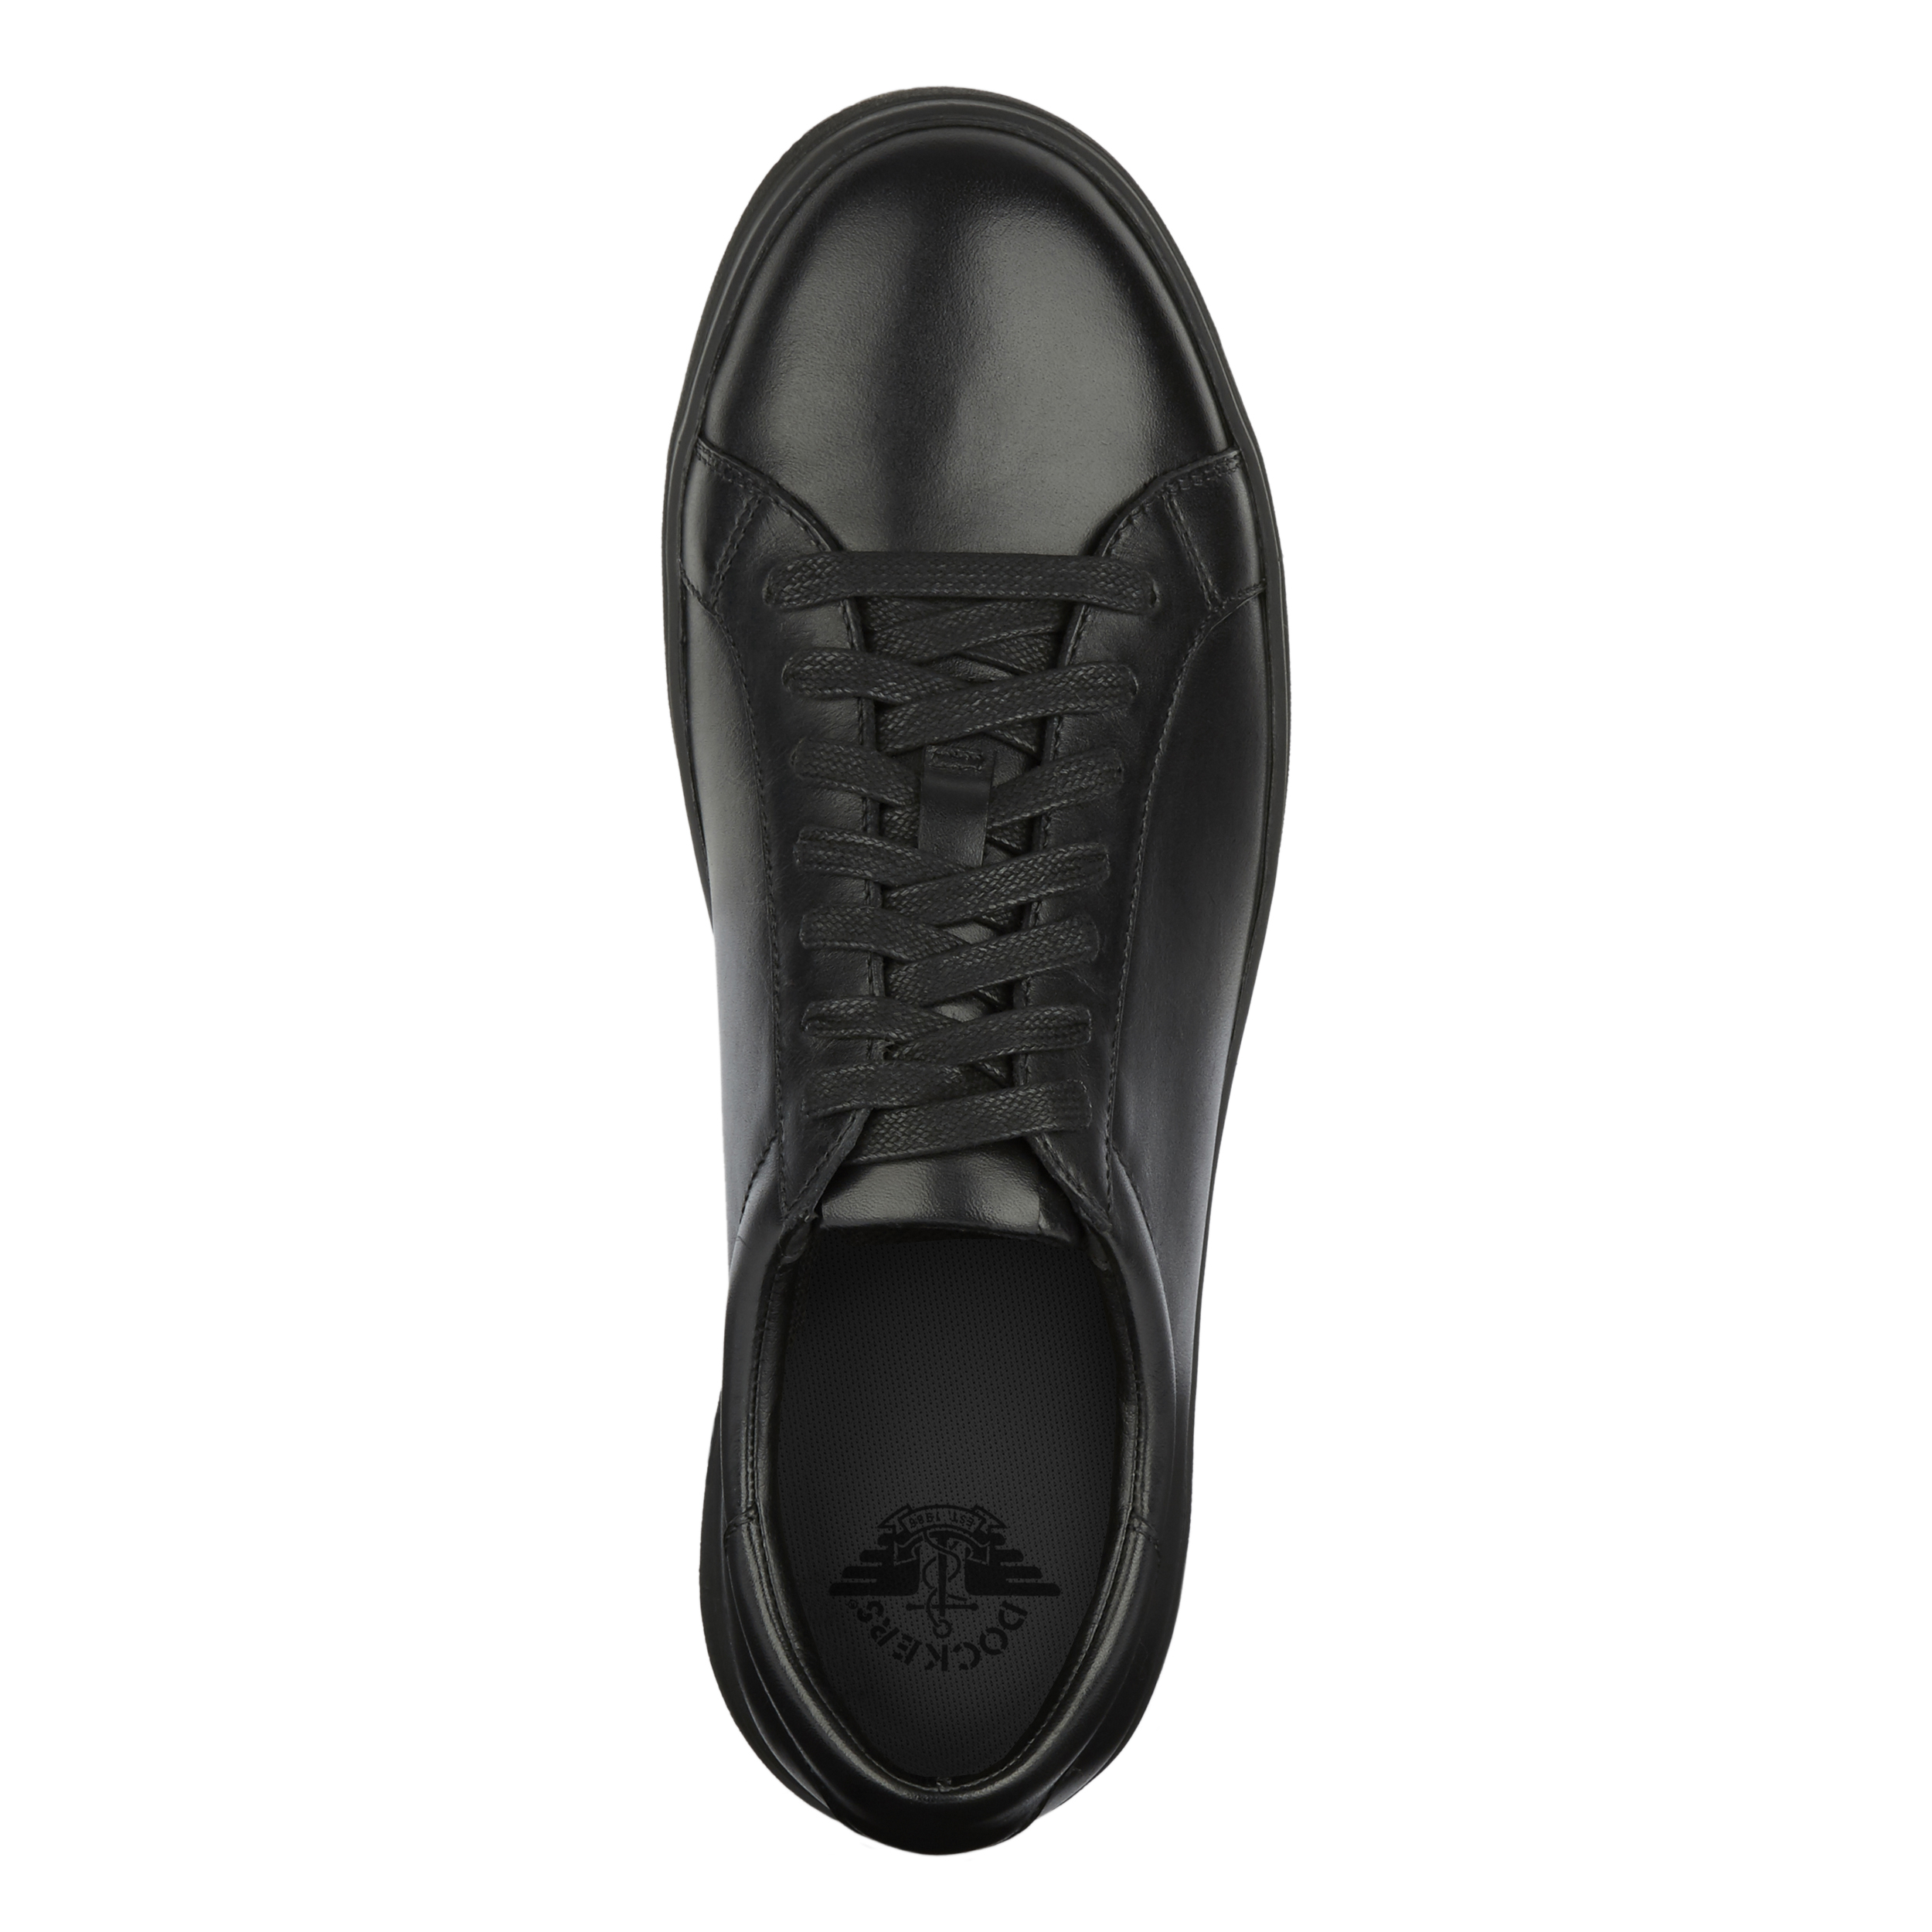 Dockers-Mens-Gilmore-Genuine-Leather-Casual-Fashion-Lace-up-Sneaker-Shoe thumbnail 8